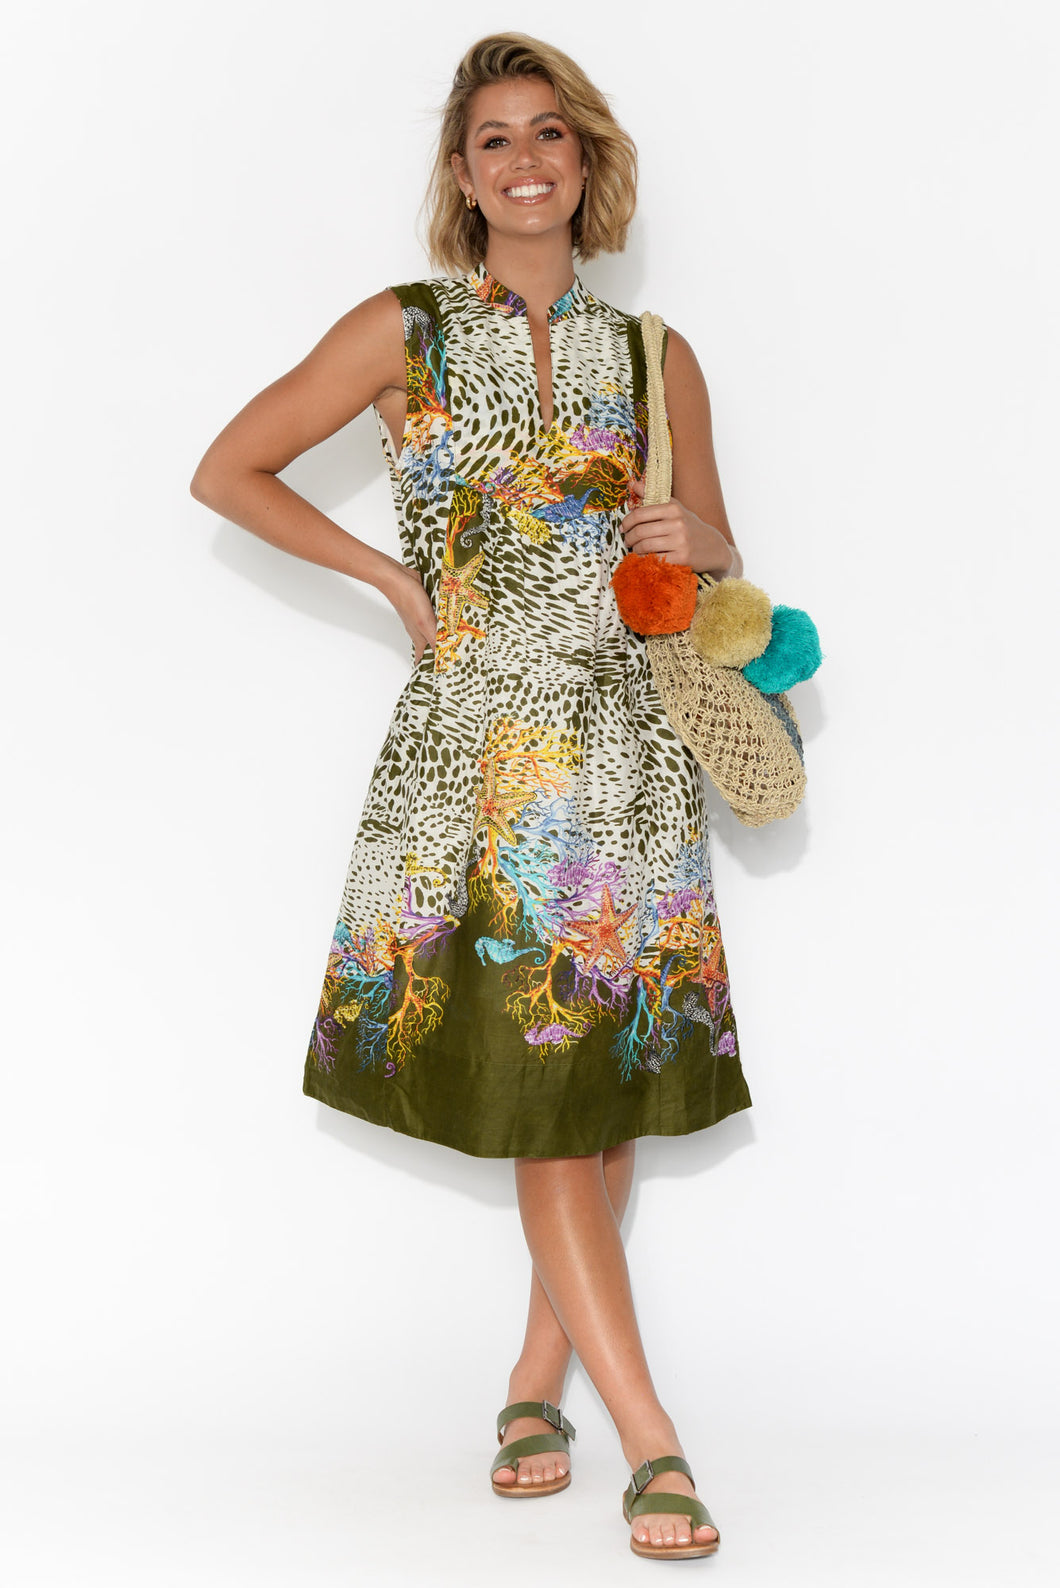 Kuranda Olive Abstract Leopard Cotton Dress